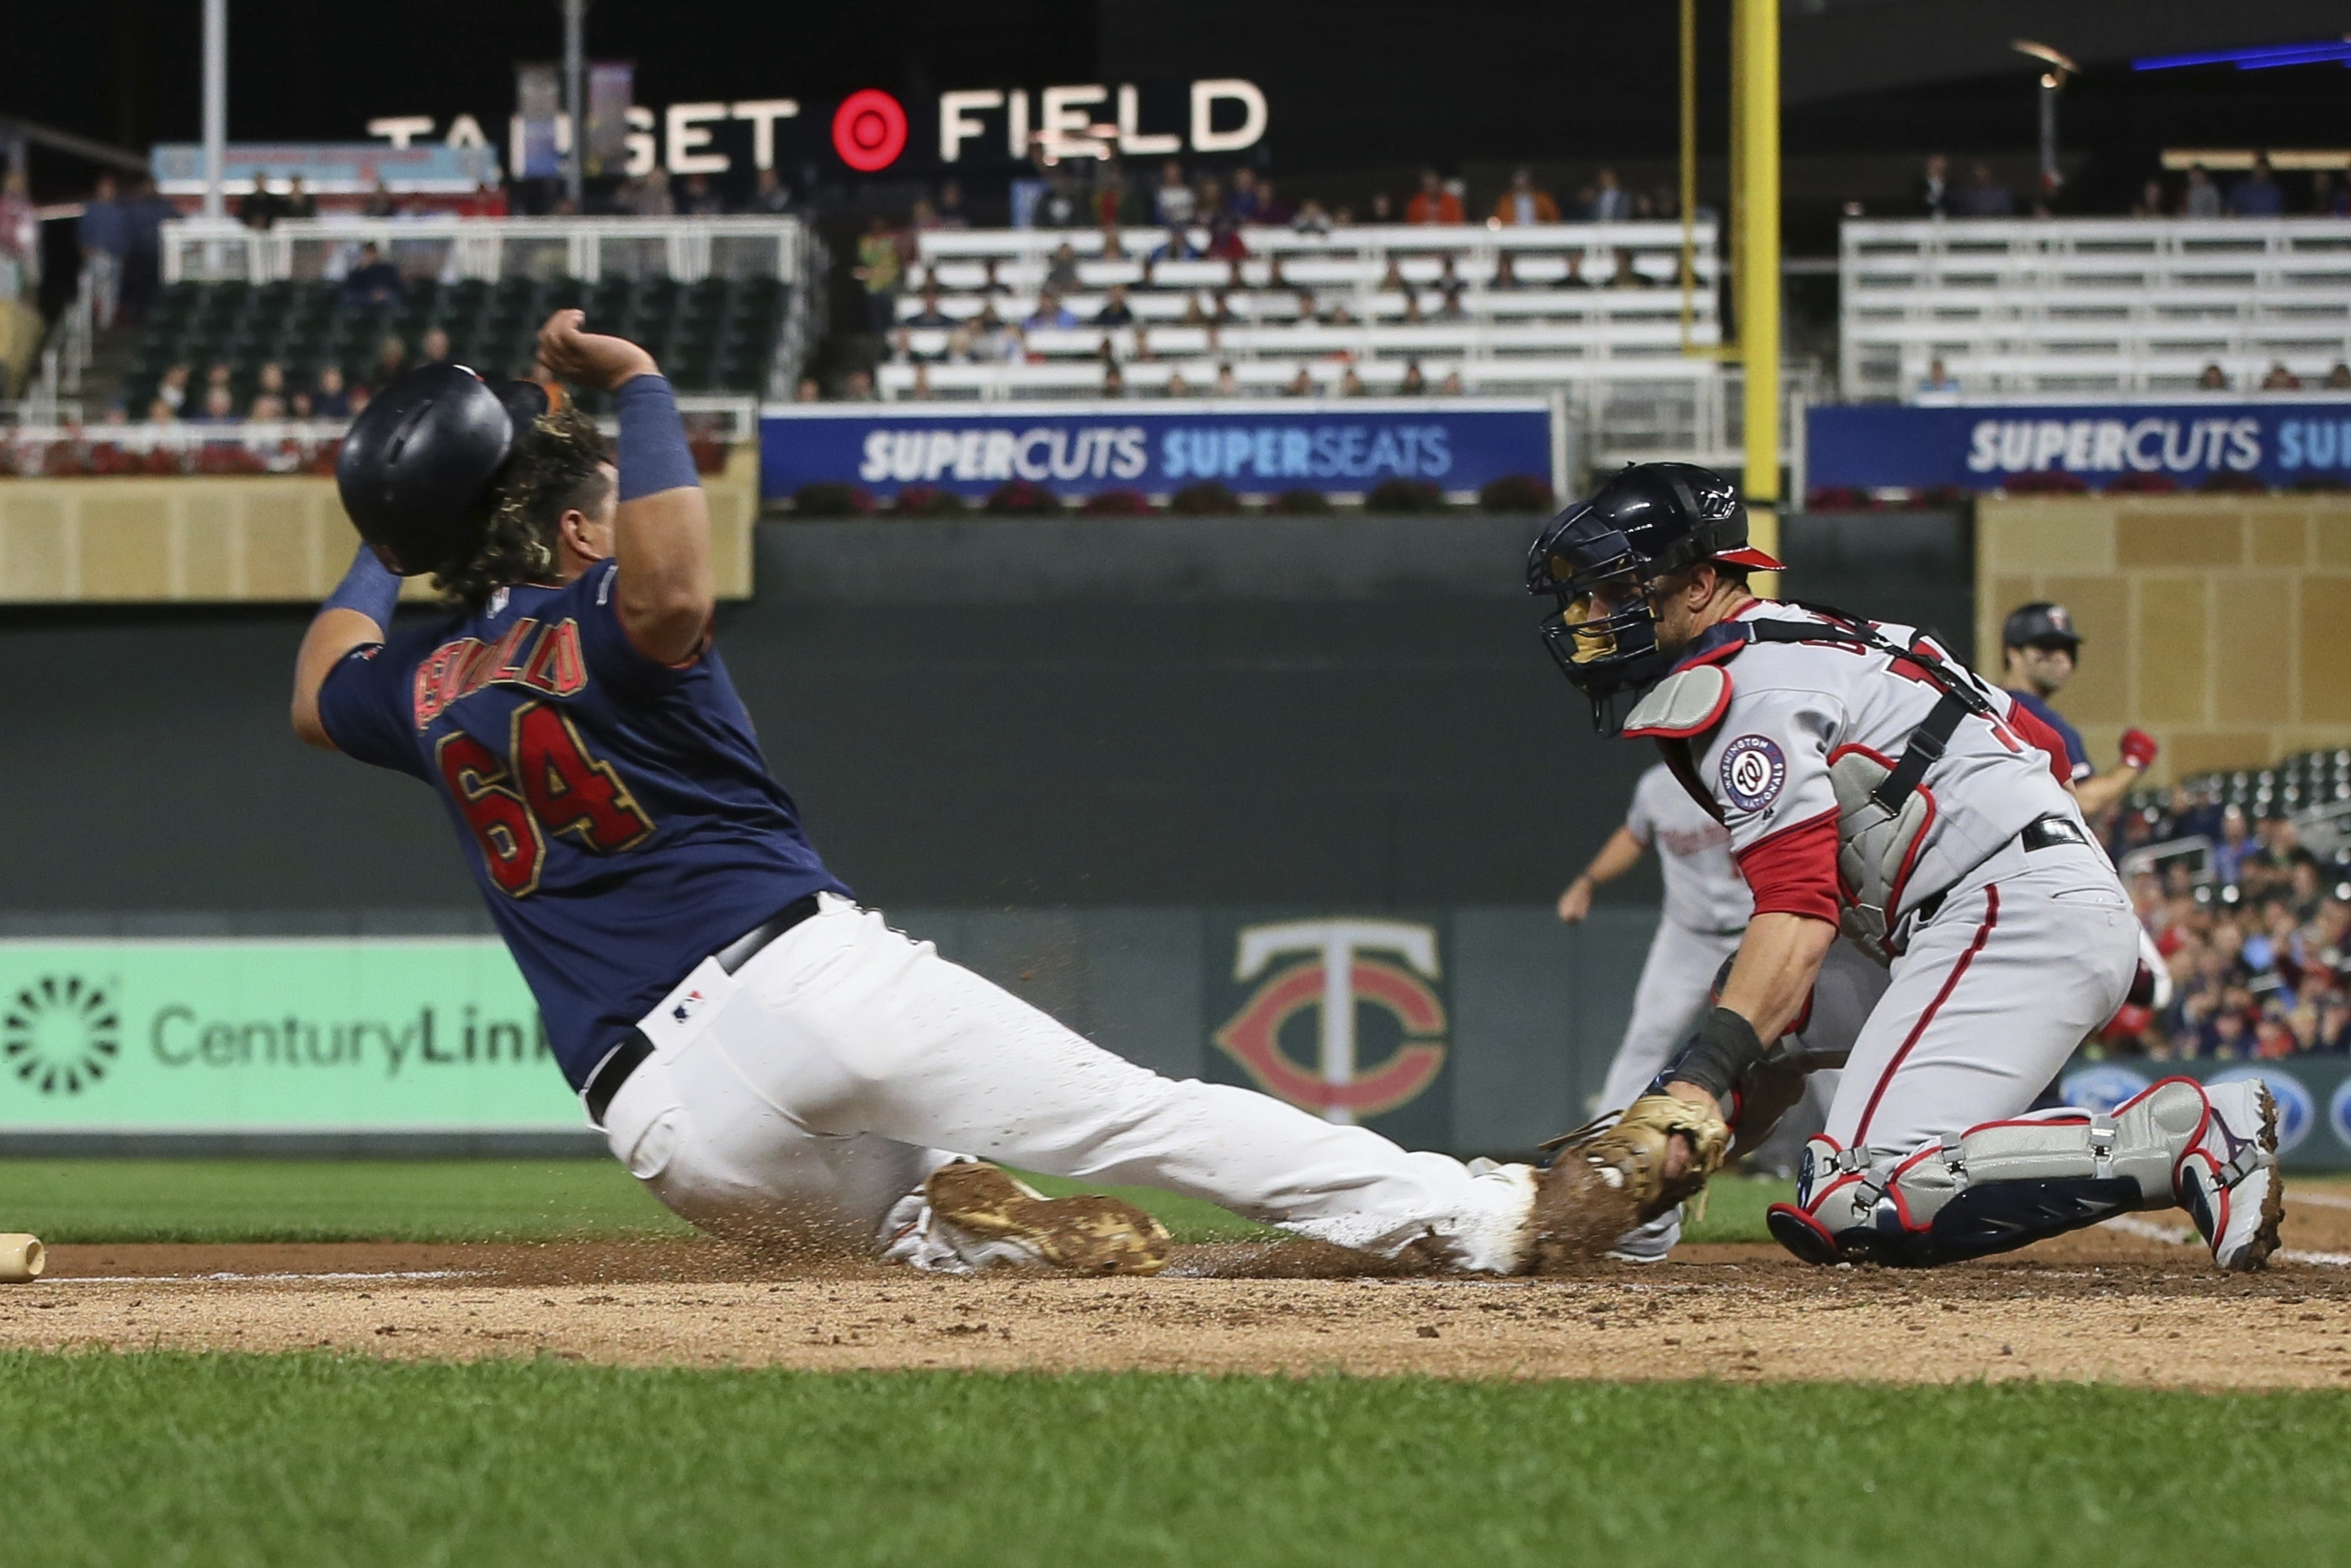 Nationals take two of three from Twins